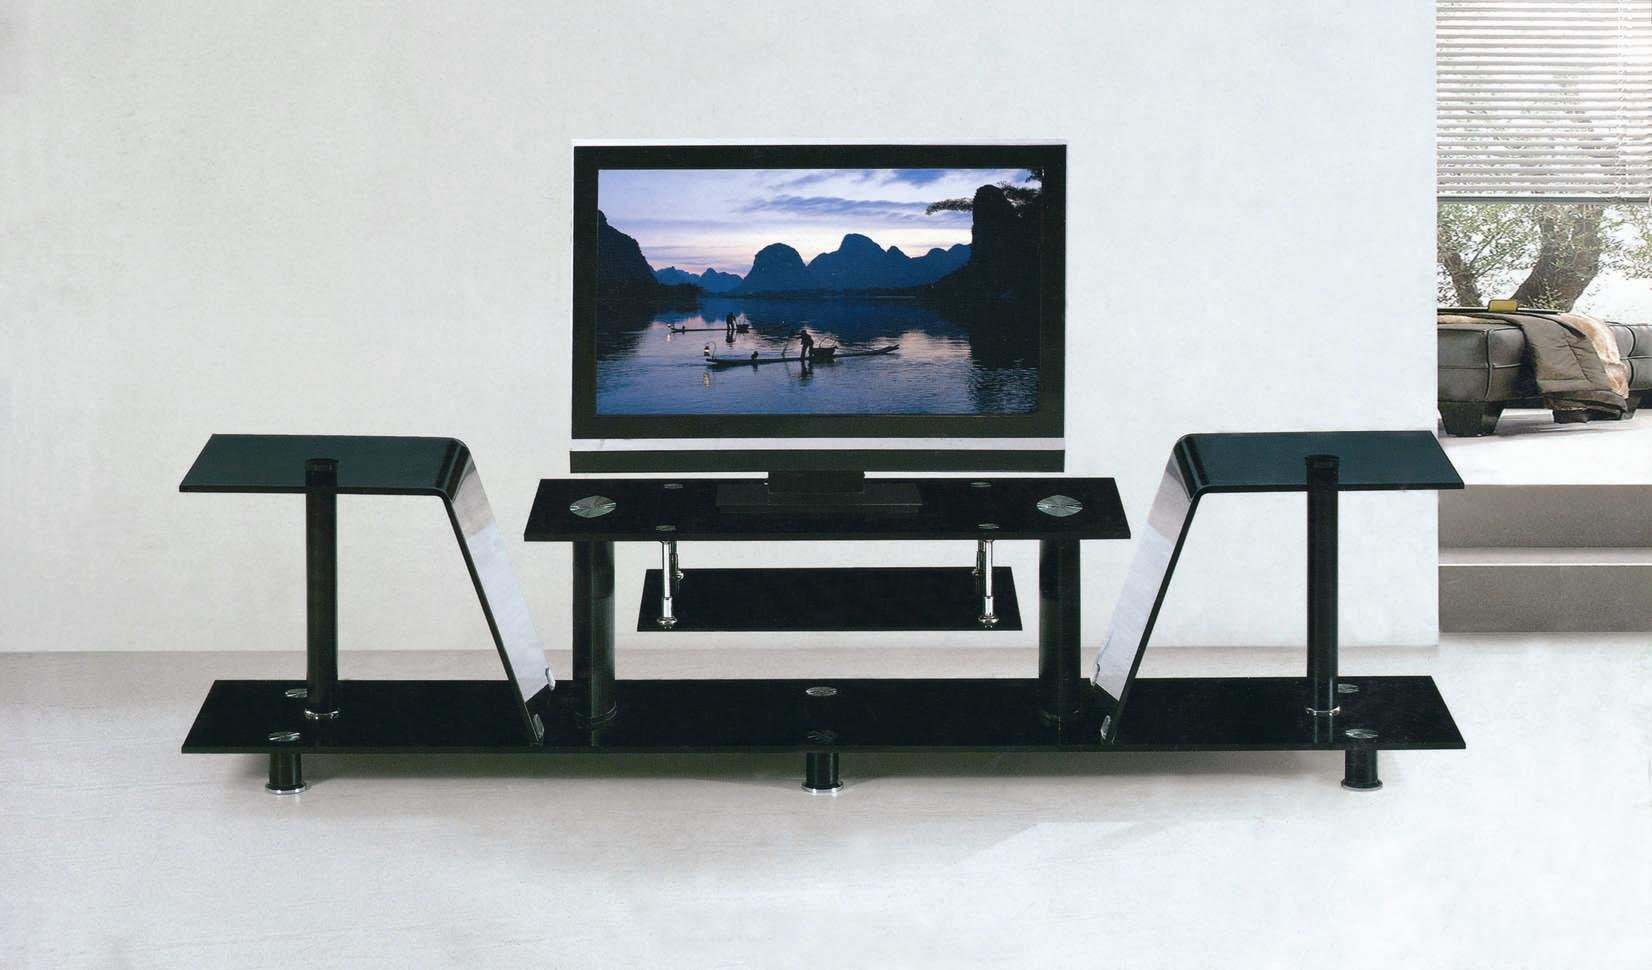 Revista muebles mobiliario de dise o for Mueble tv minimalista